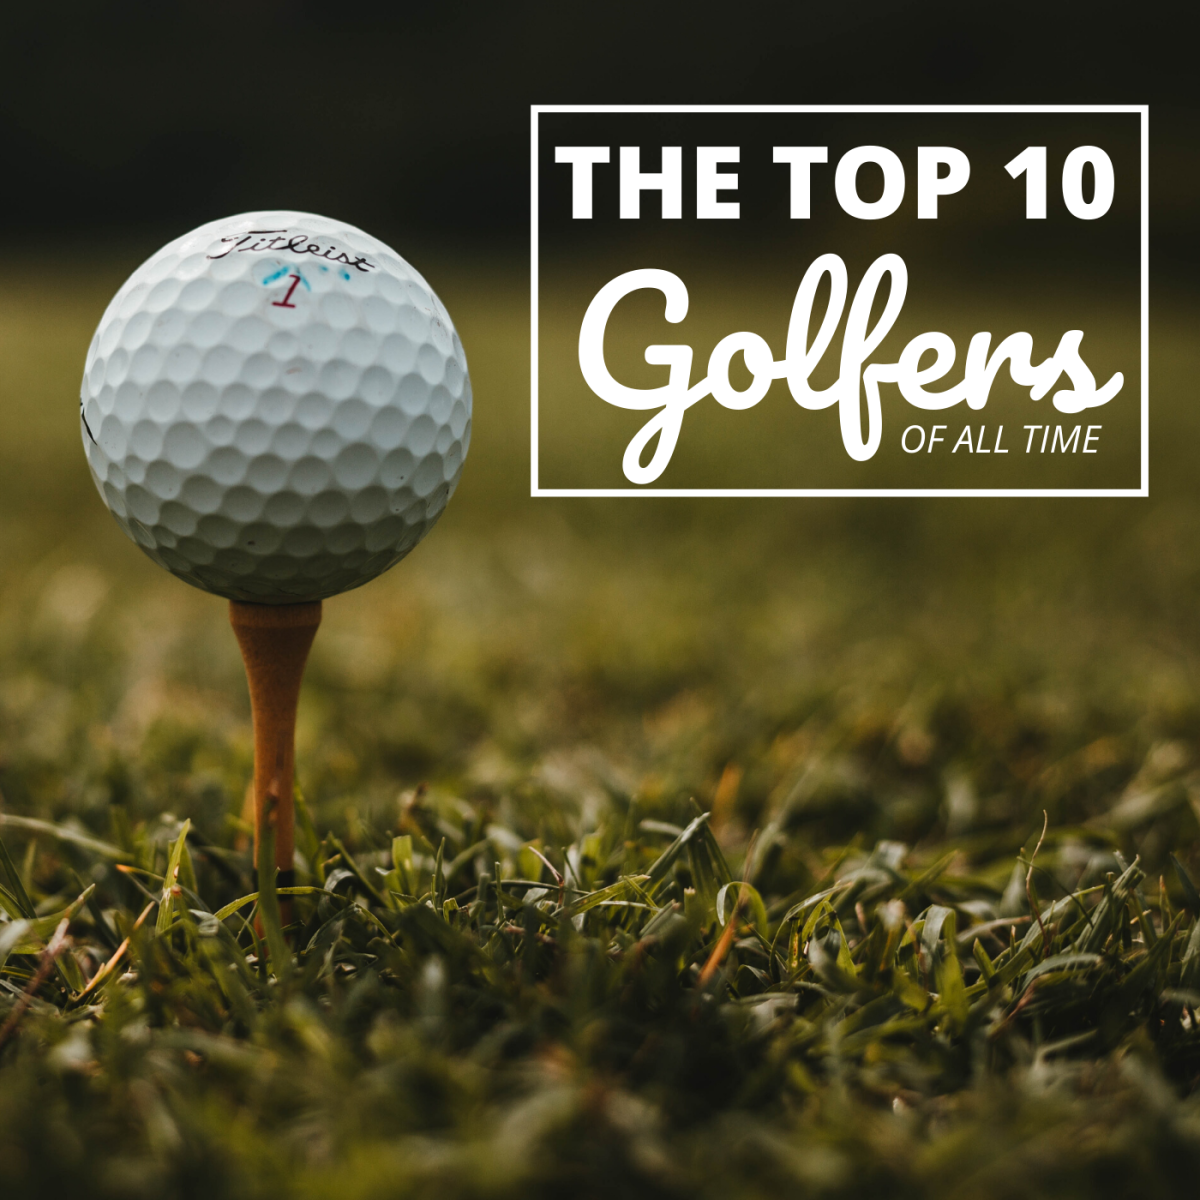 The Top Ten Best Golfers of All Time